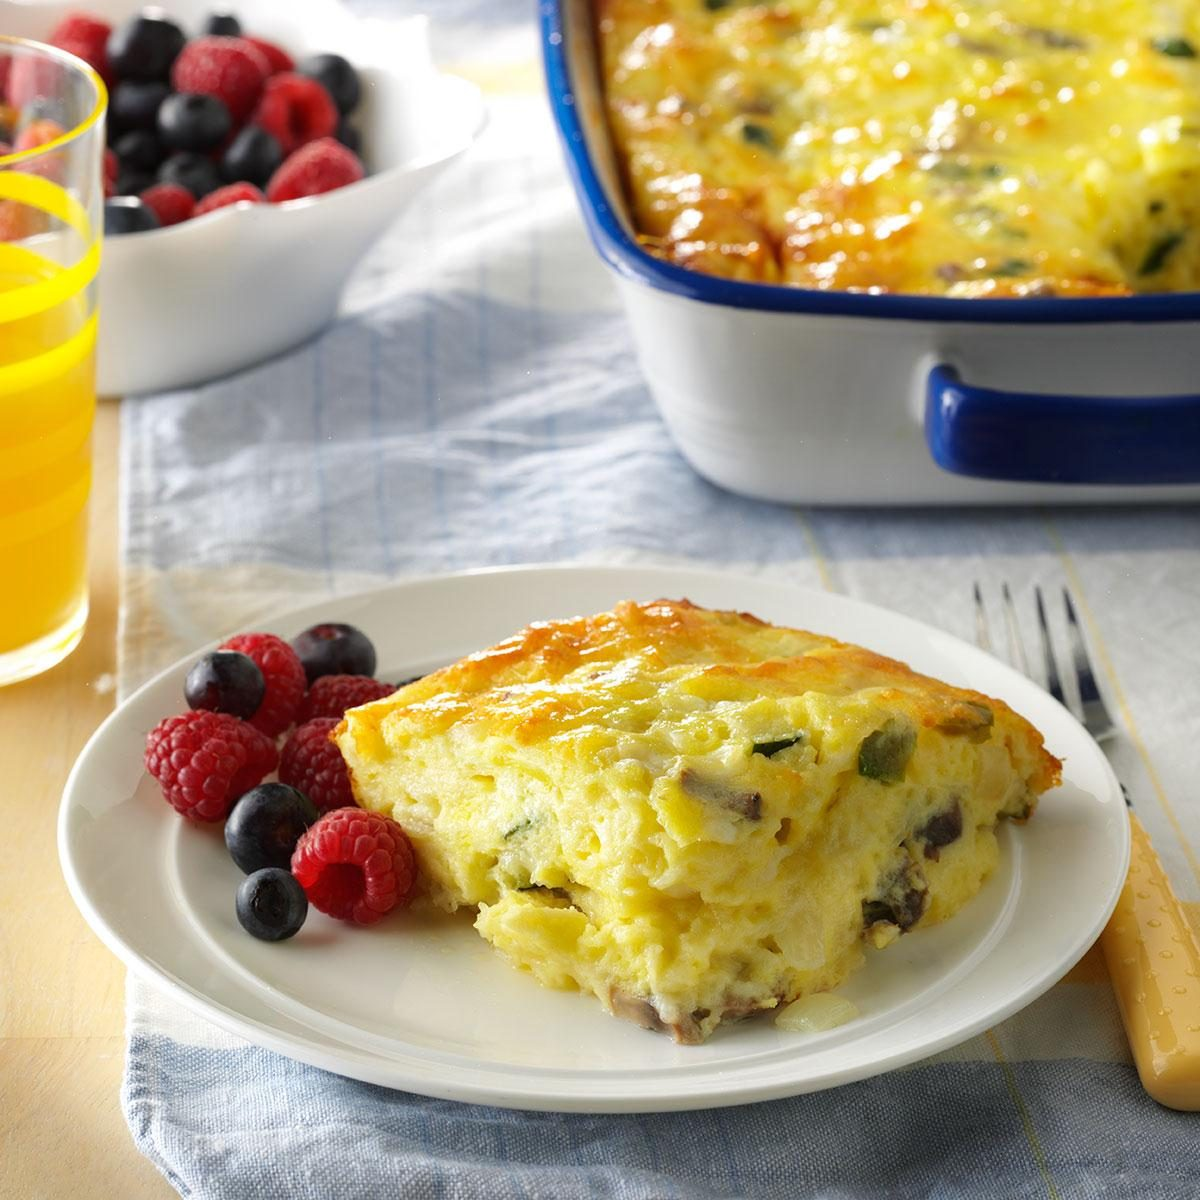 22 Egg Casserole Recipes to Make for Breakfast